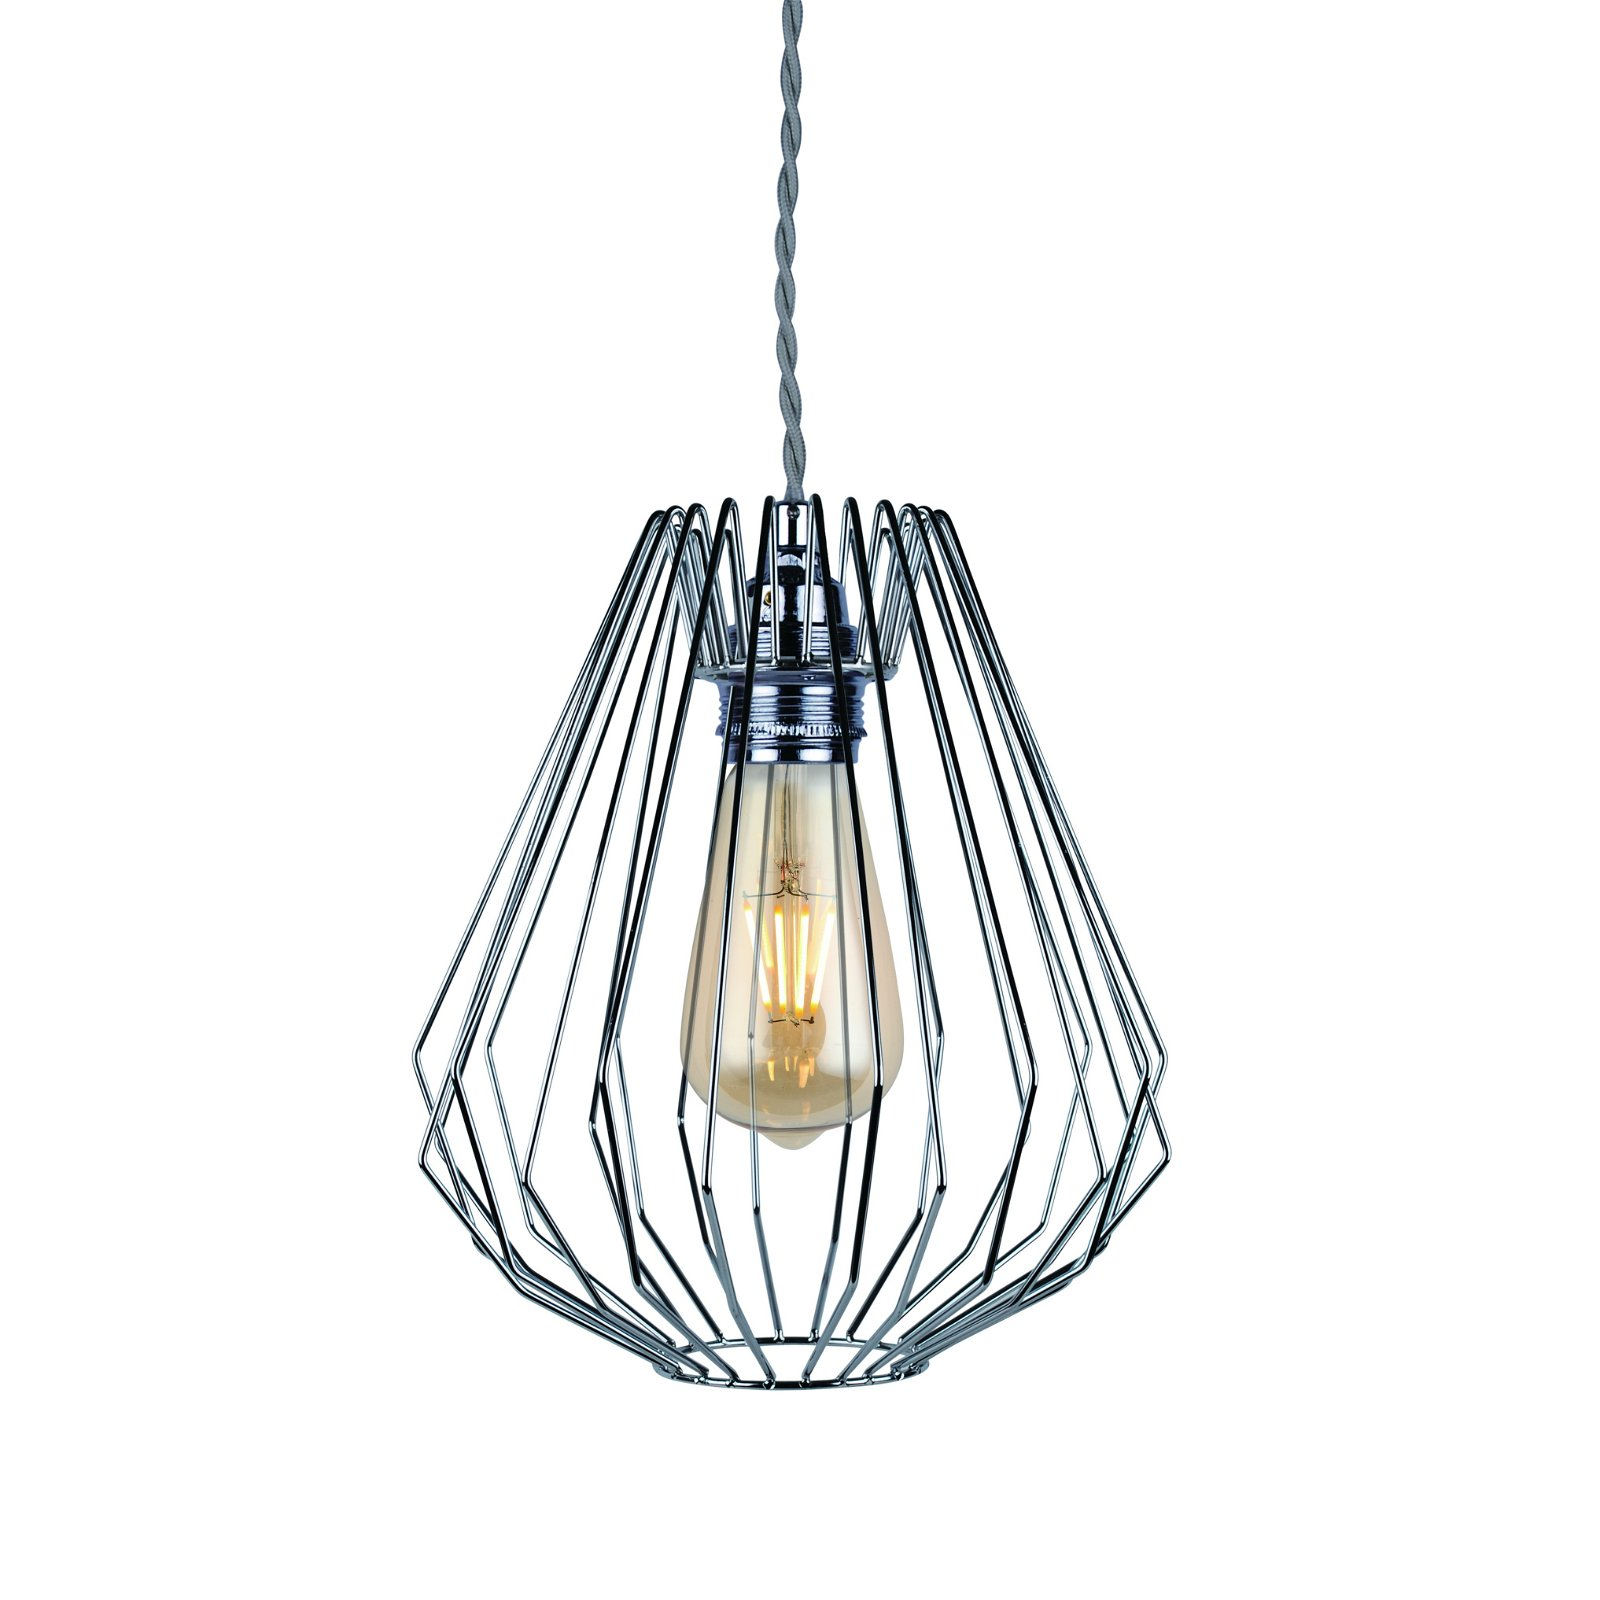 Polished Chrome Wire Geometric Ceiling Light Fitting